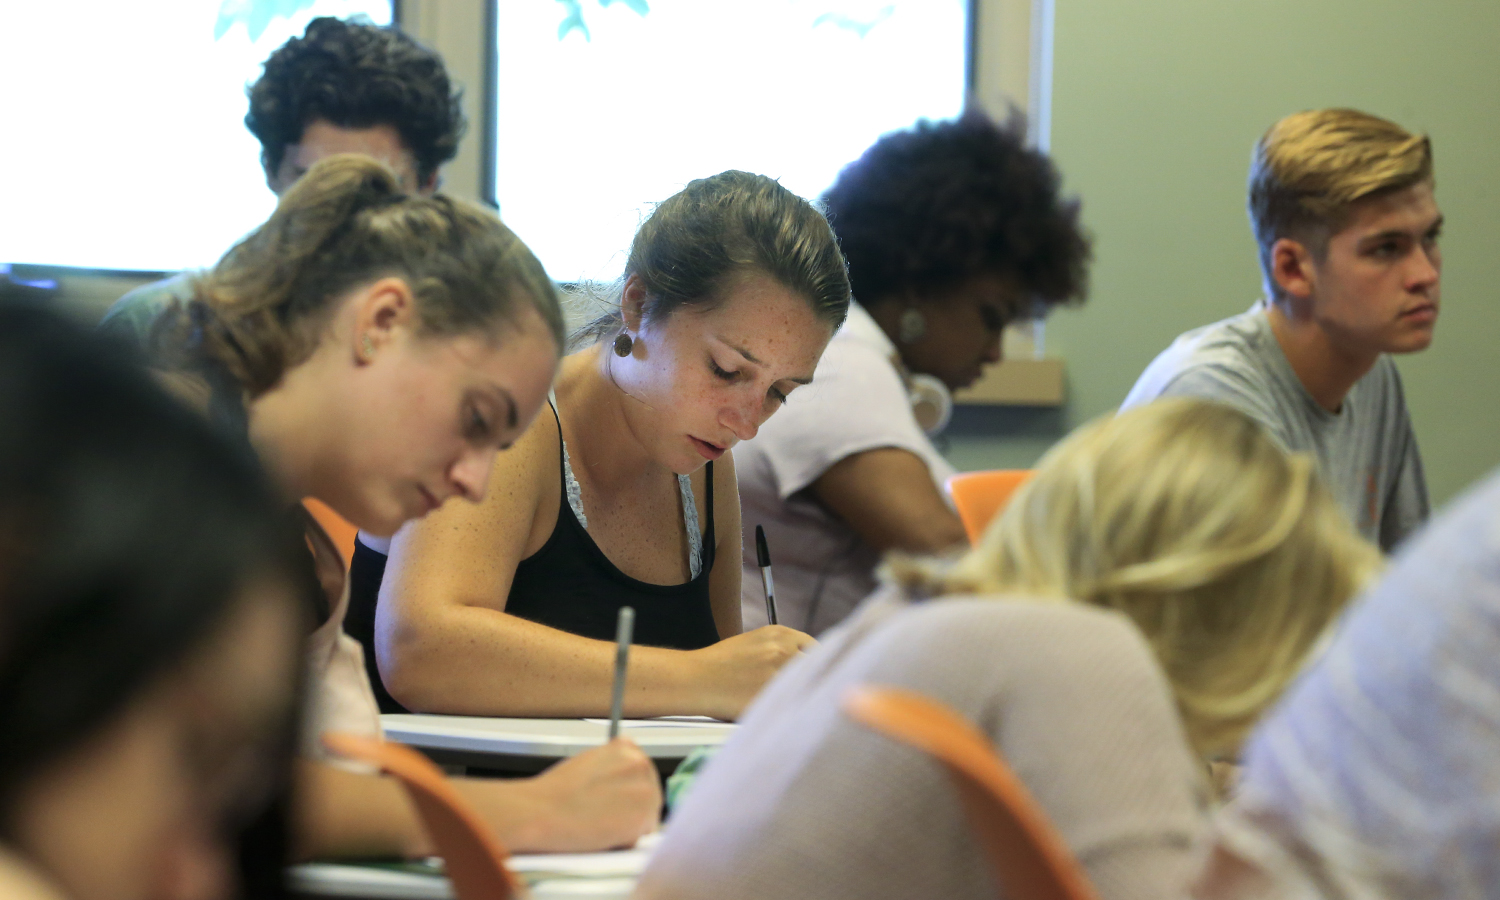 _______ and her classmates take notes during a class on Monday.